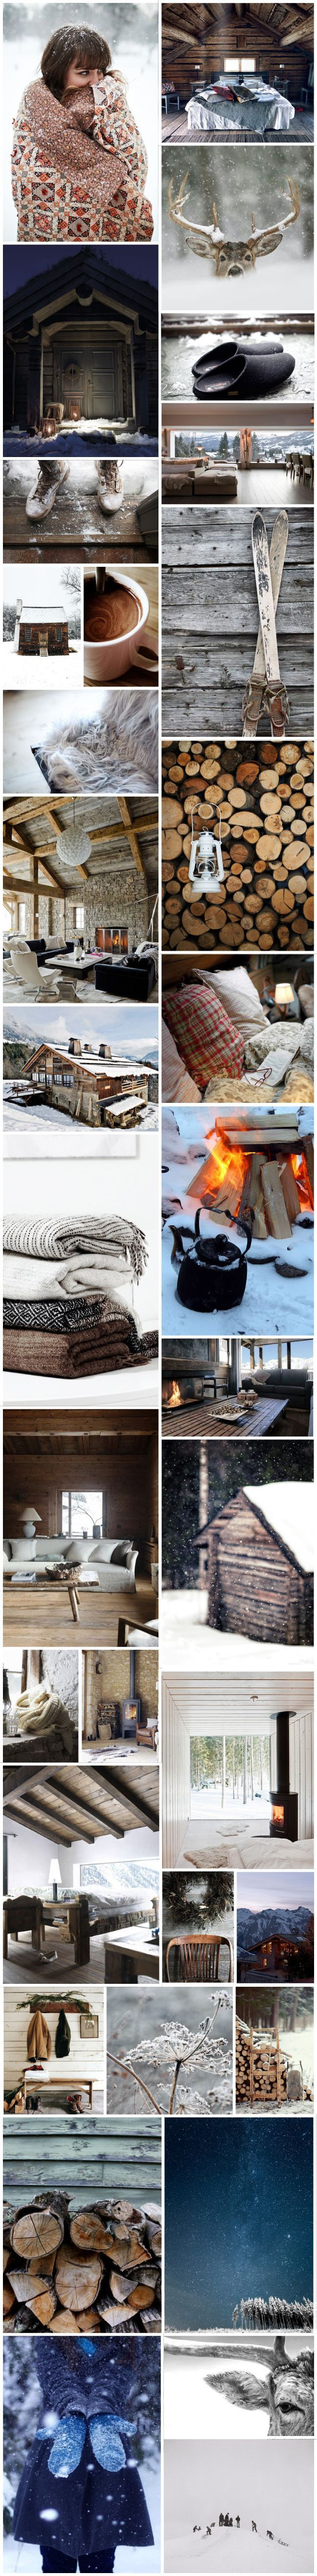 pinned by barefootstyling.com  MOODBOARD | MY PERFECT WINTER CABIN